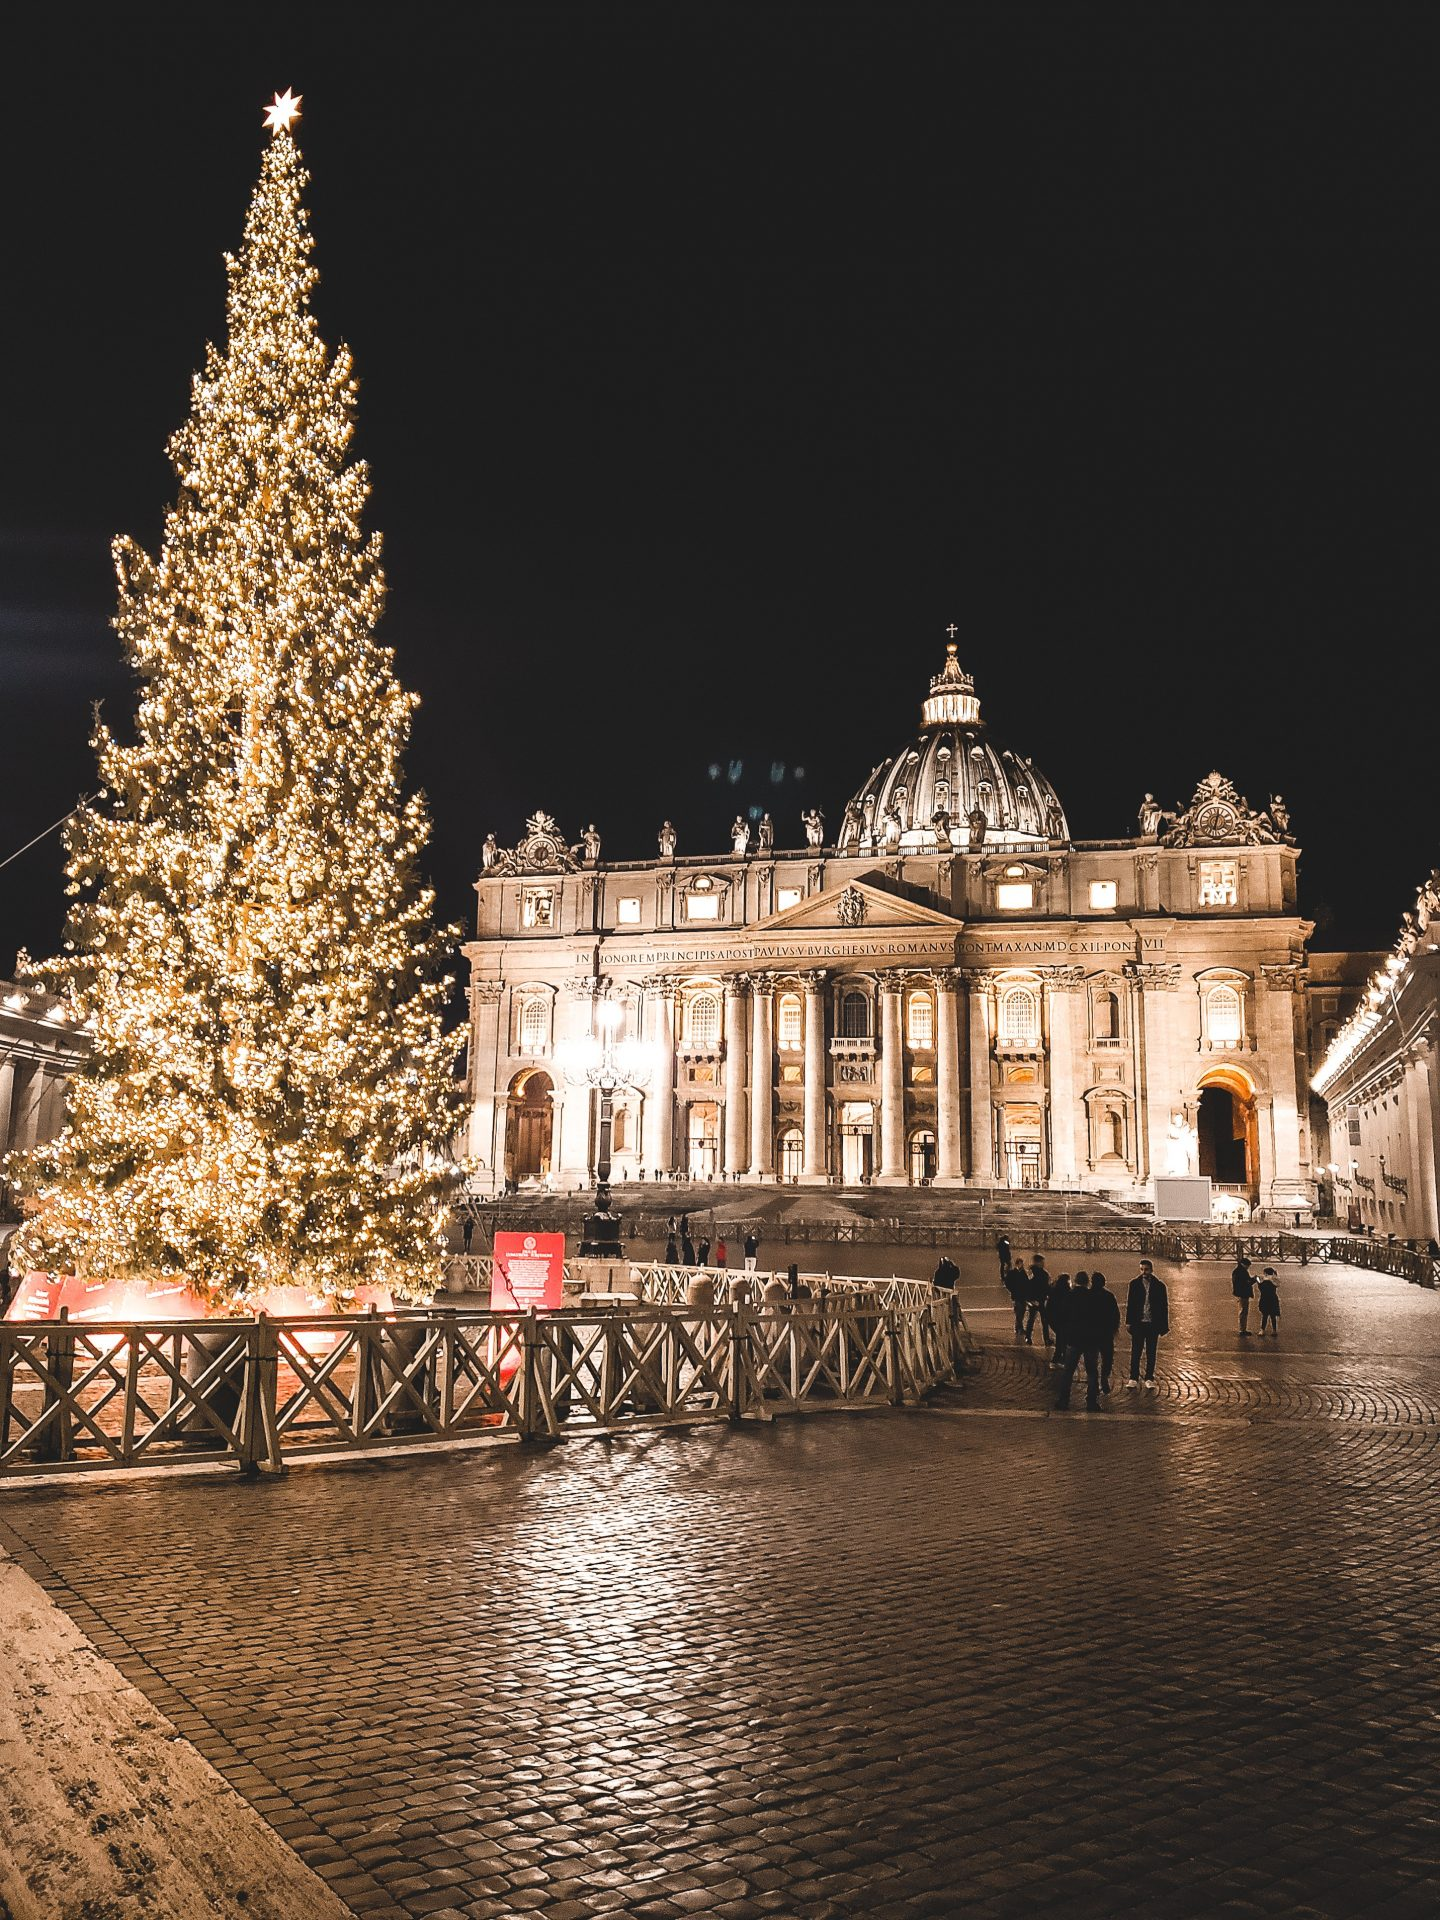 Stock image of an enormous lit up tree in a square in St Peter's Square Vatican City.